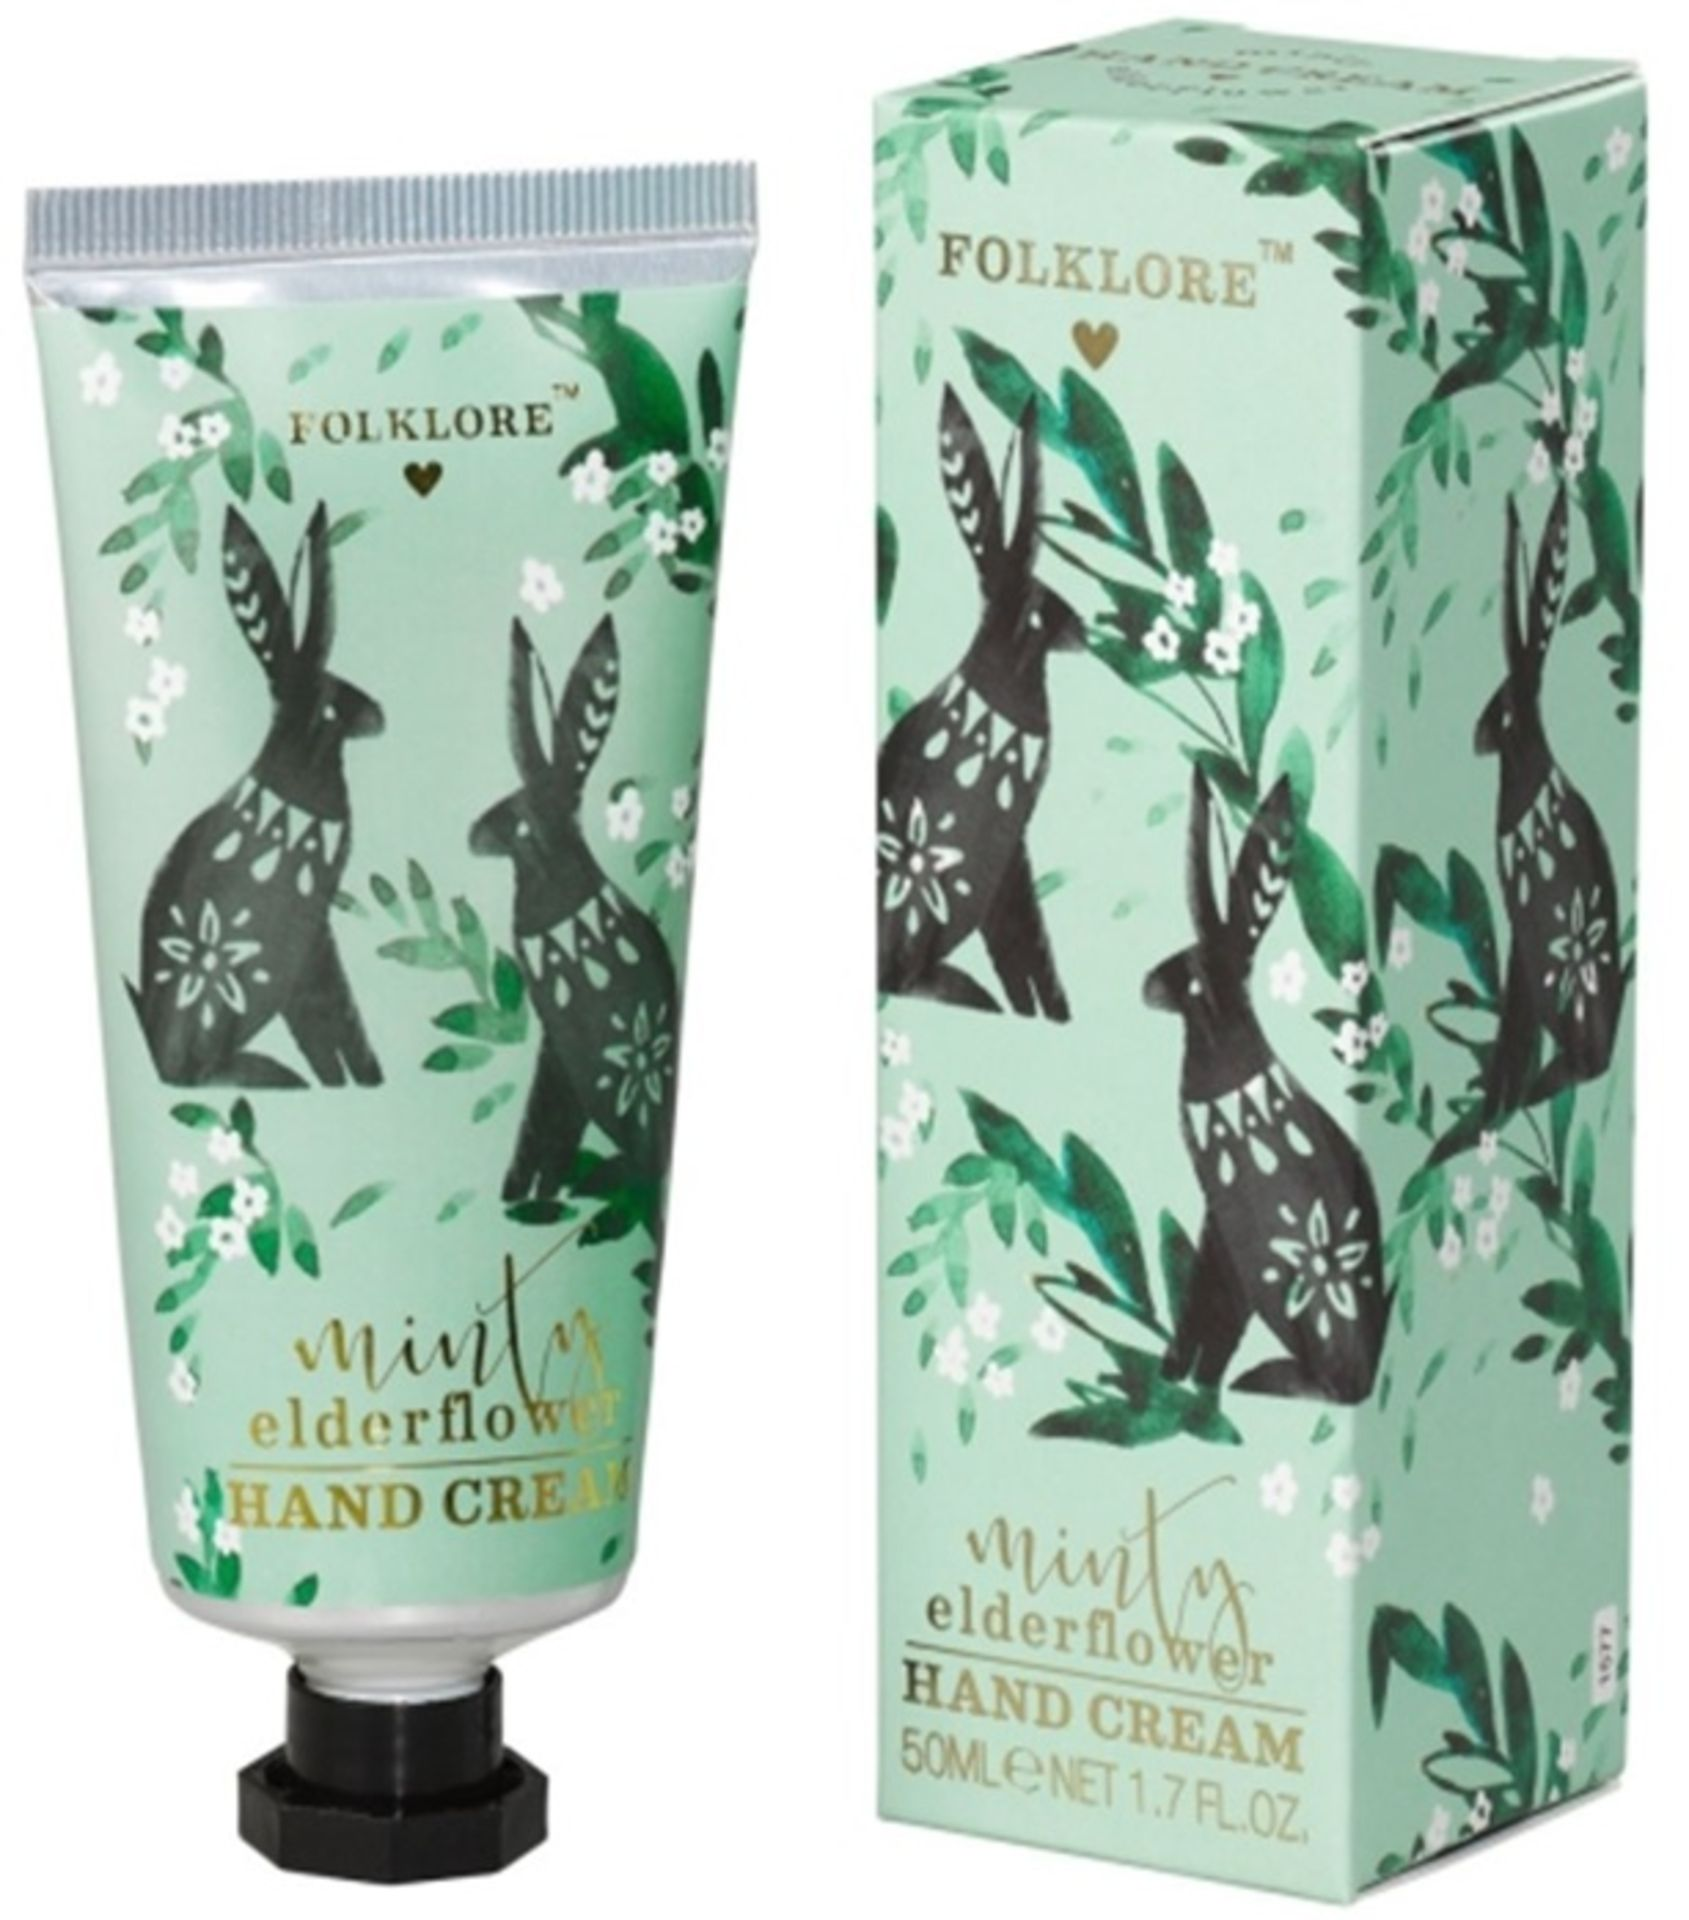 500 x Various Folklore Handcream   50ml   Total RRP £4,495 - Image 4 of 4